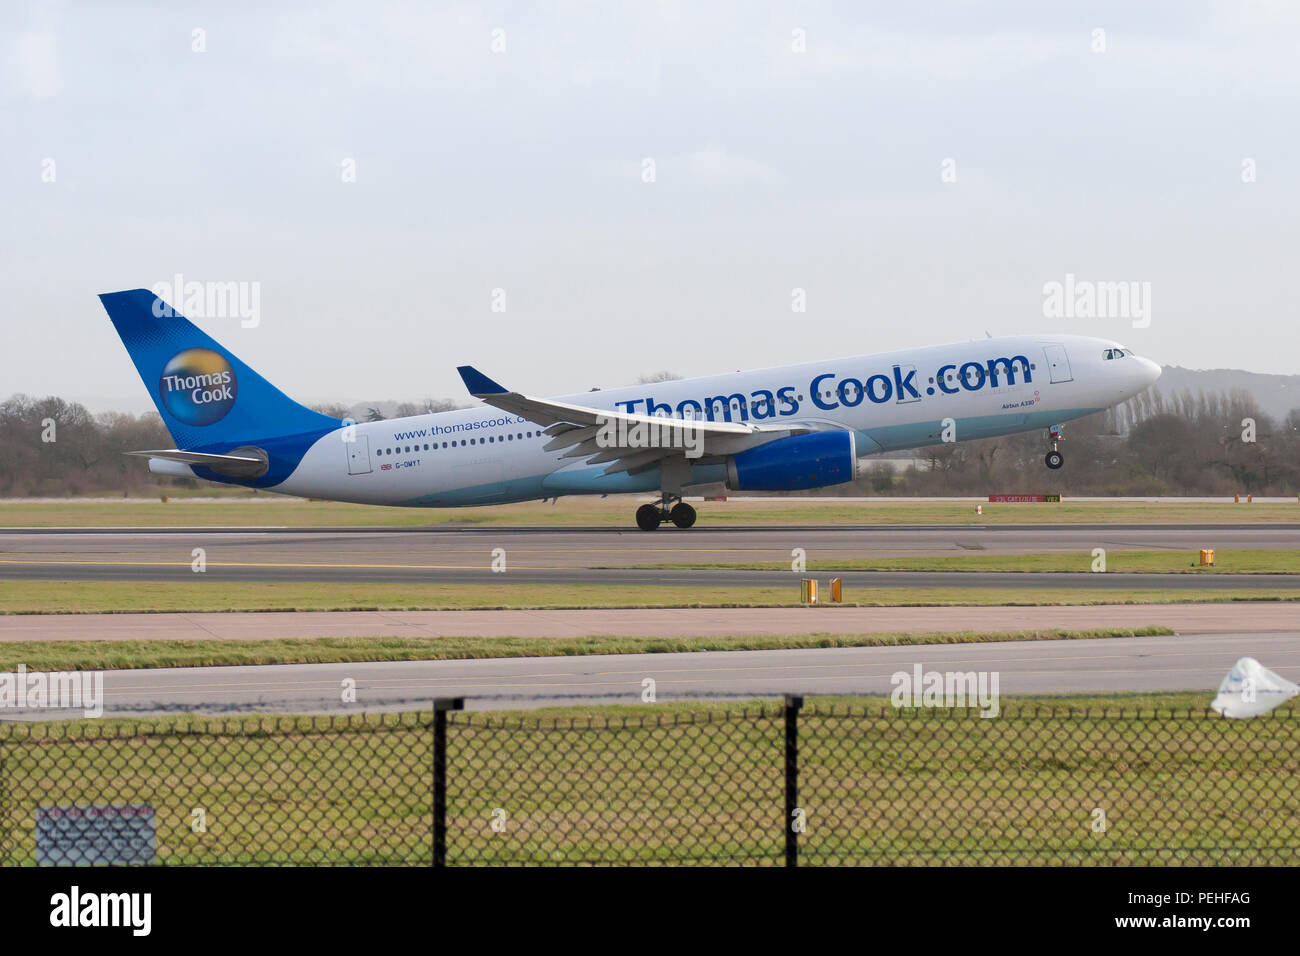 Thomas Cook Airbus A330 in old livery taking off from Manchester Airport - Stock Image